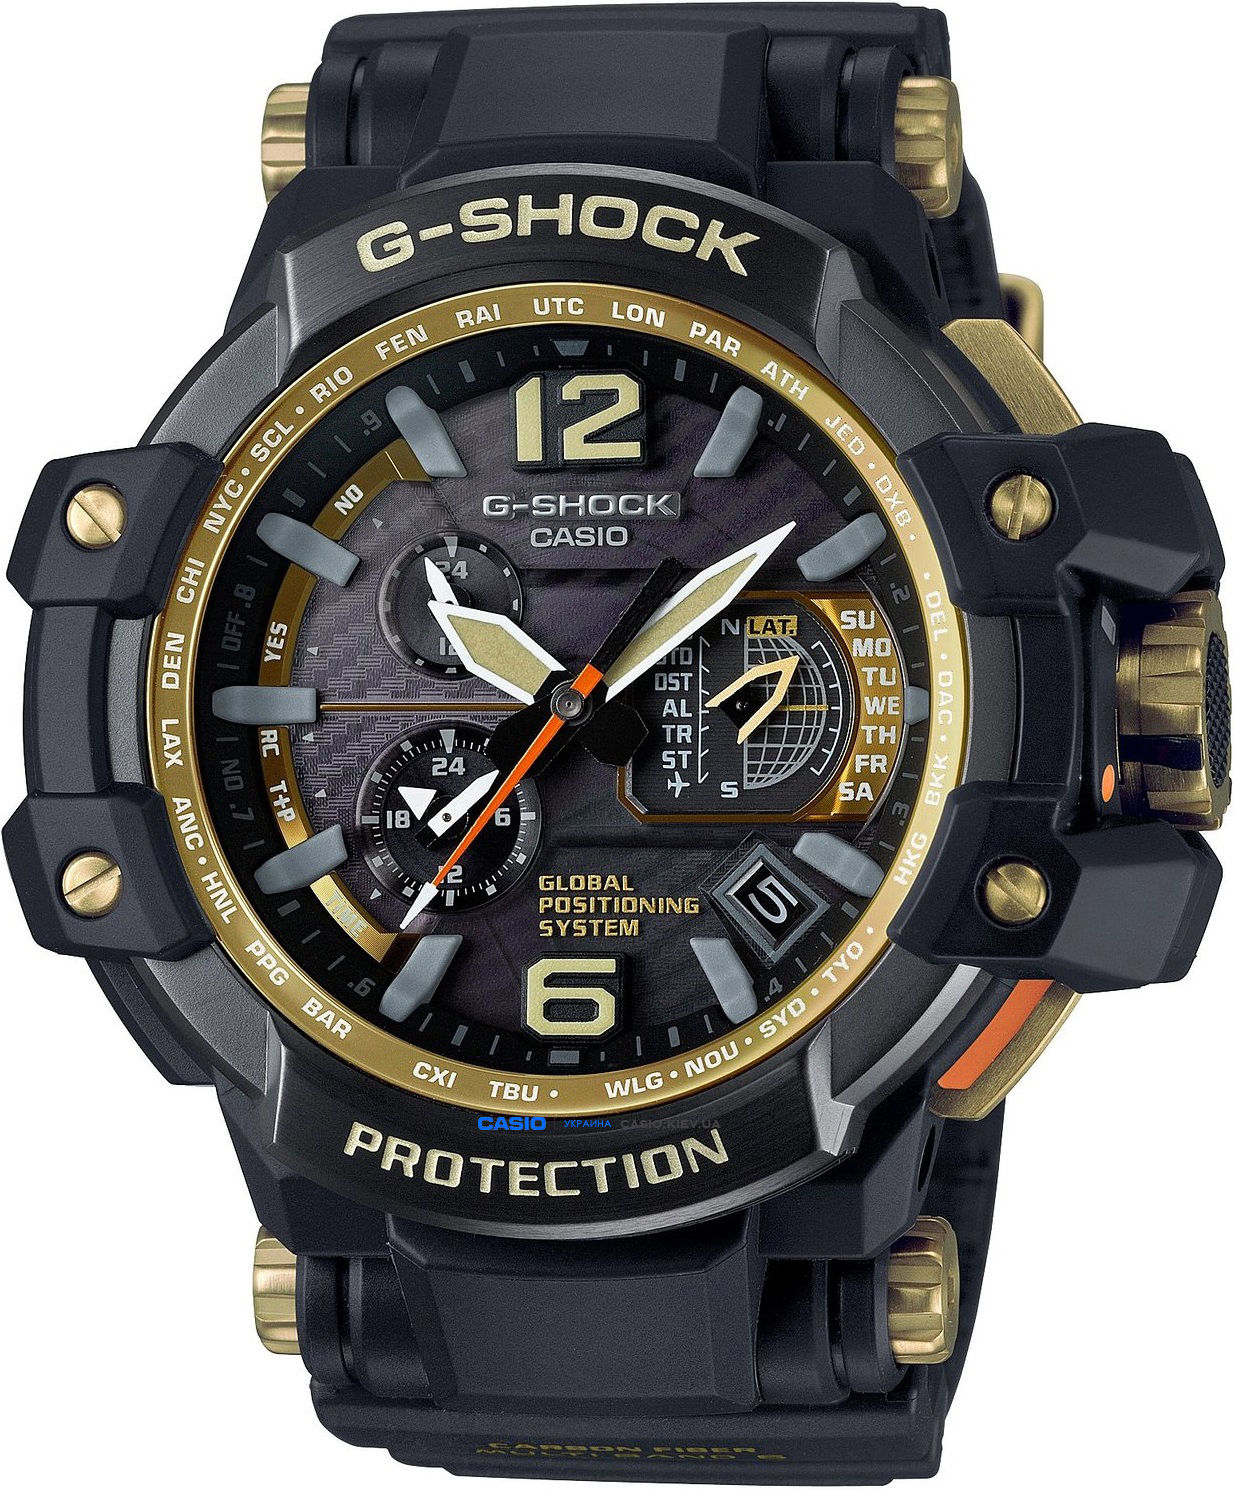 GPW-1000GB-1AER, Casio G-Shock